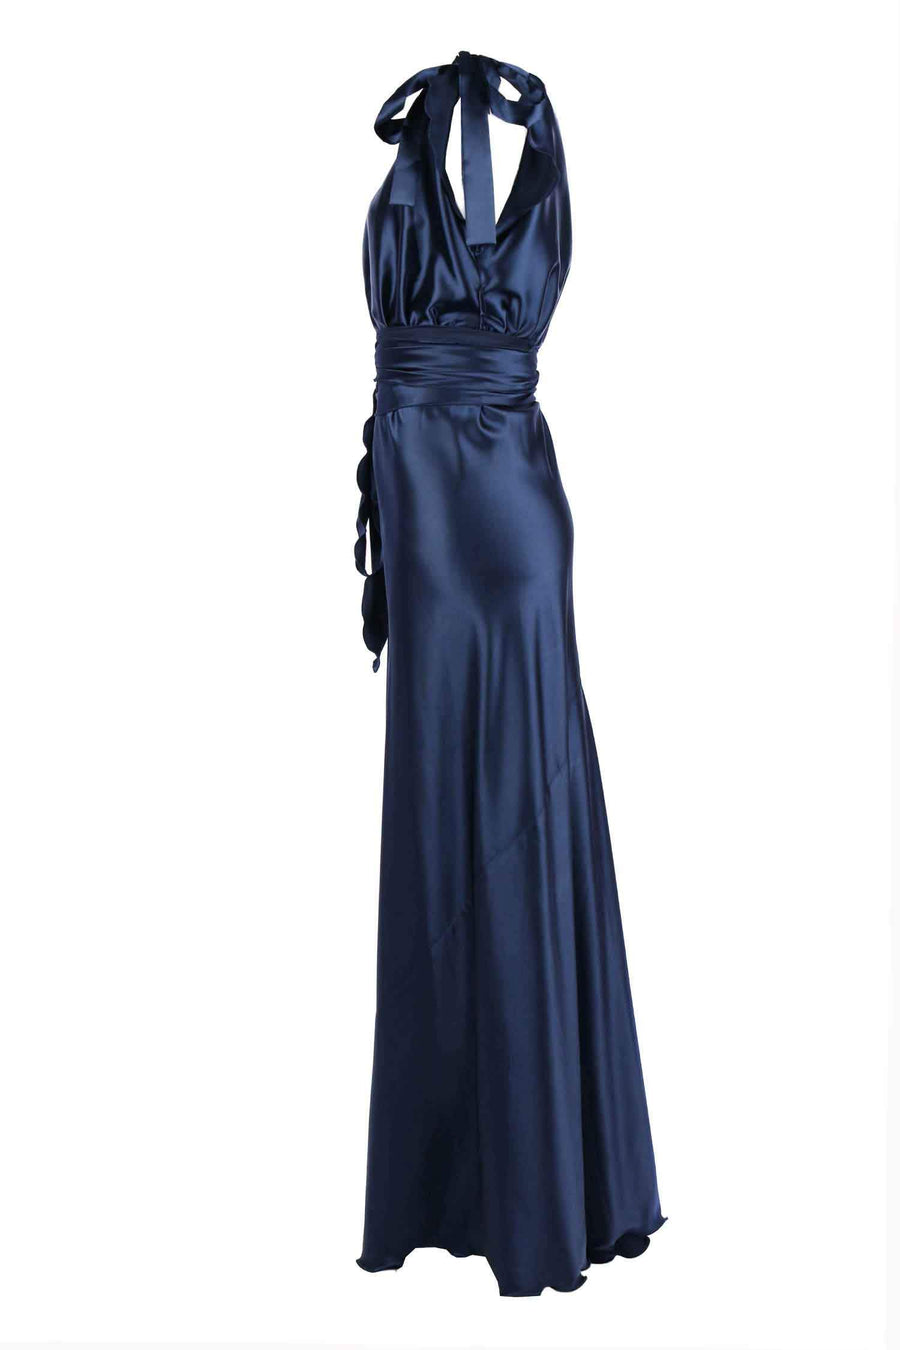 Shop Online Serena in Navy Poly Satin by Lucy Laurita - Leiela  Frockaholics Dresses